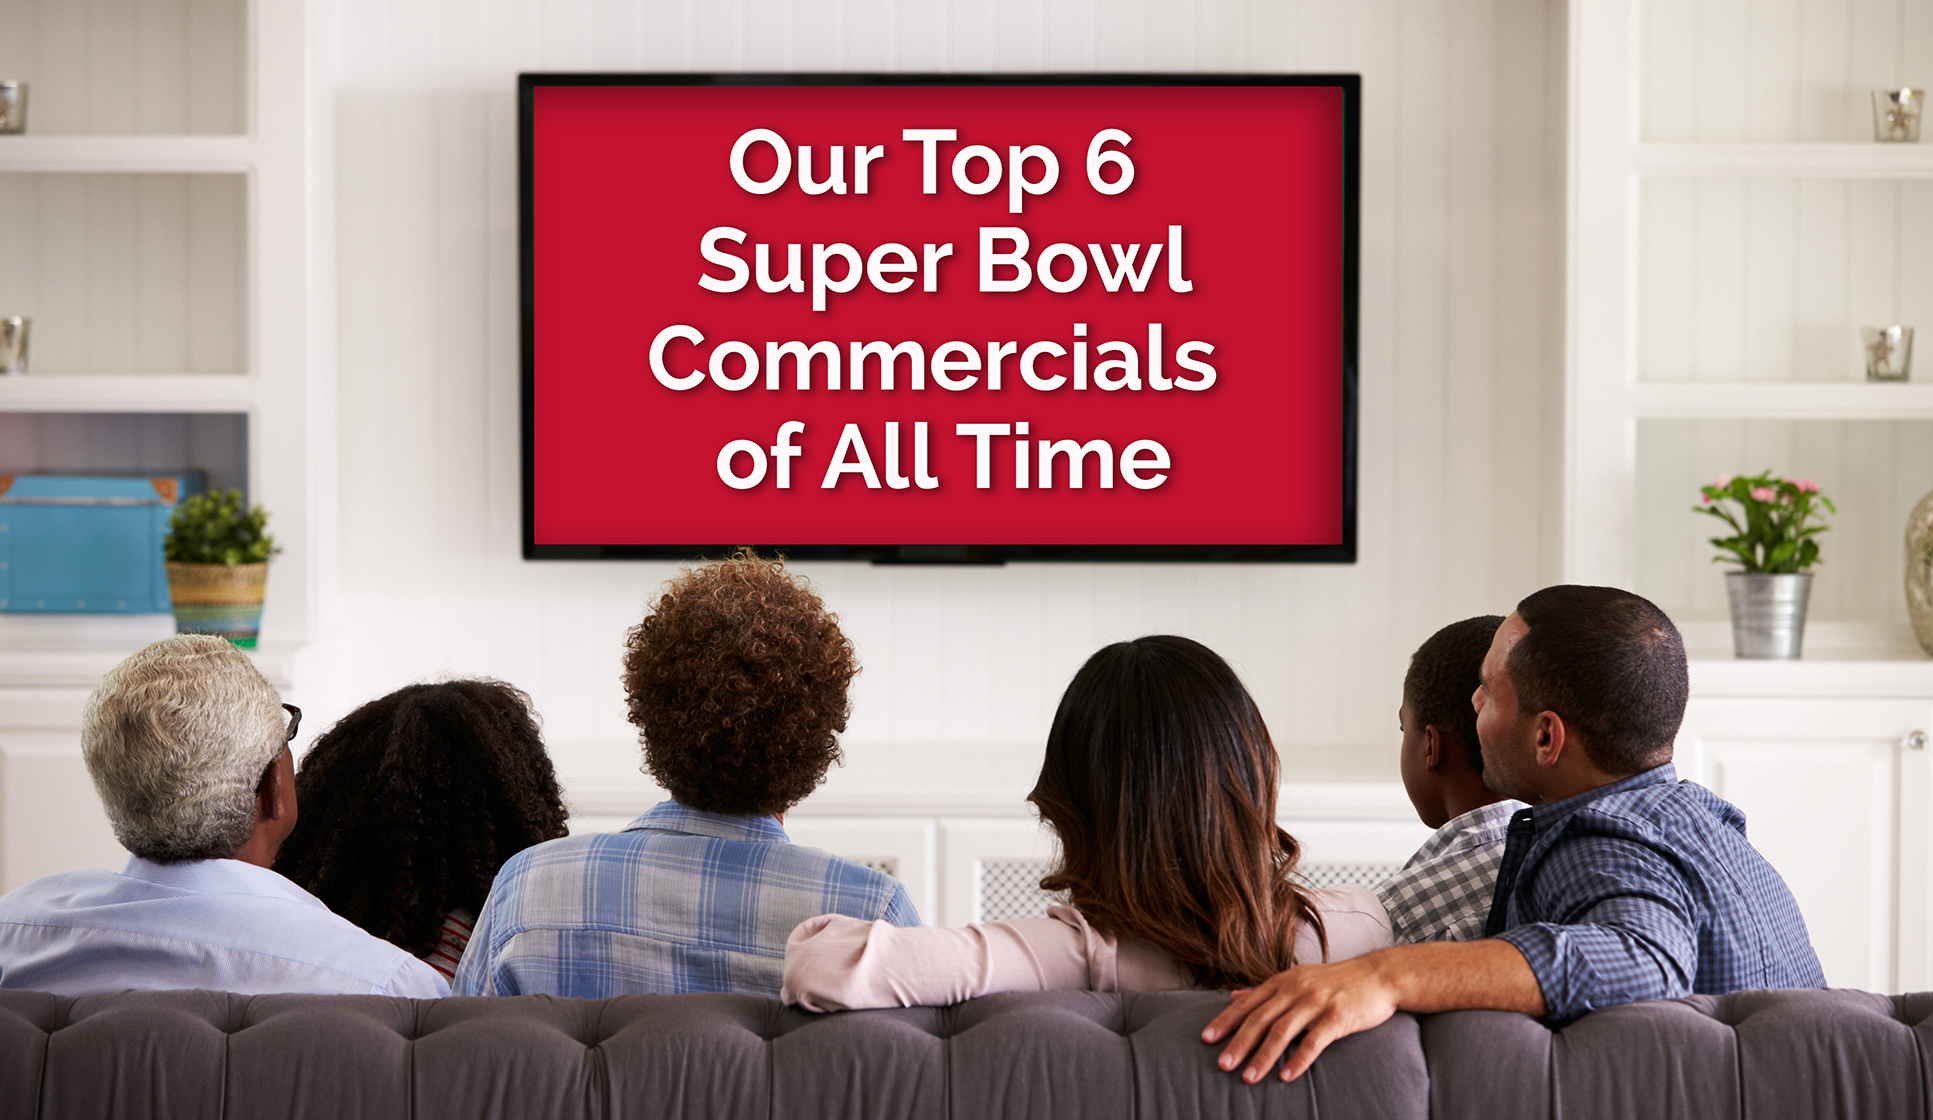 Delia Associates - Top 6 Super Bowl Commercials Of All Time